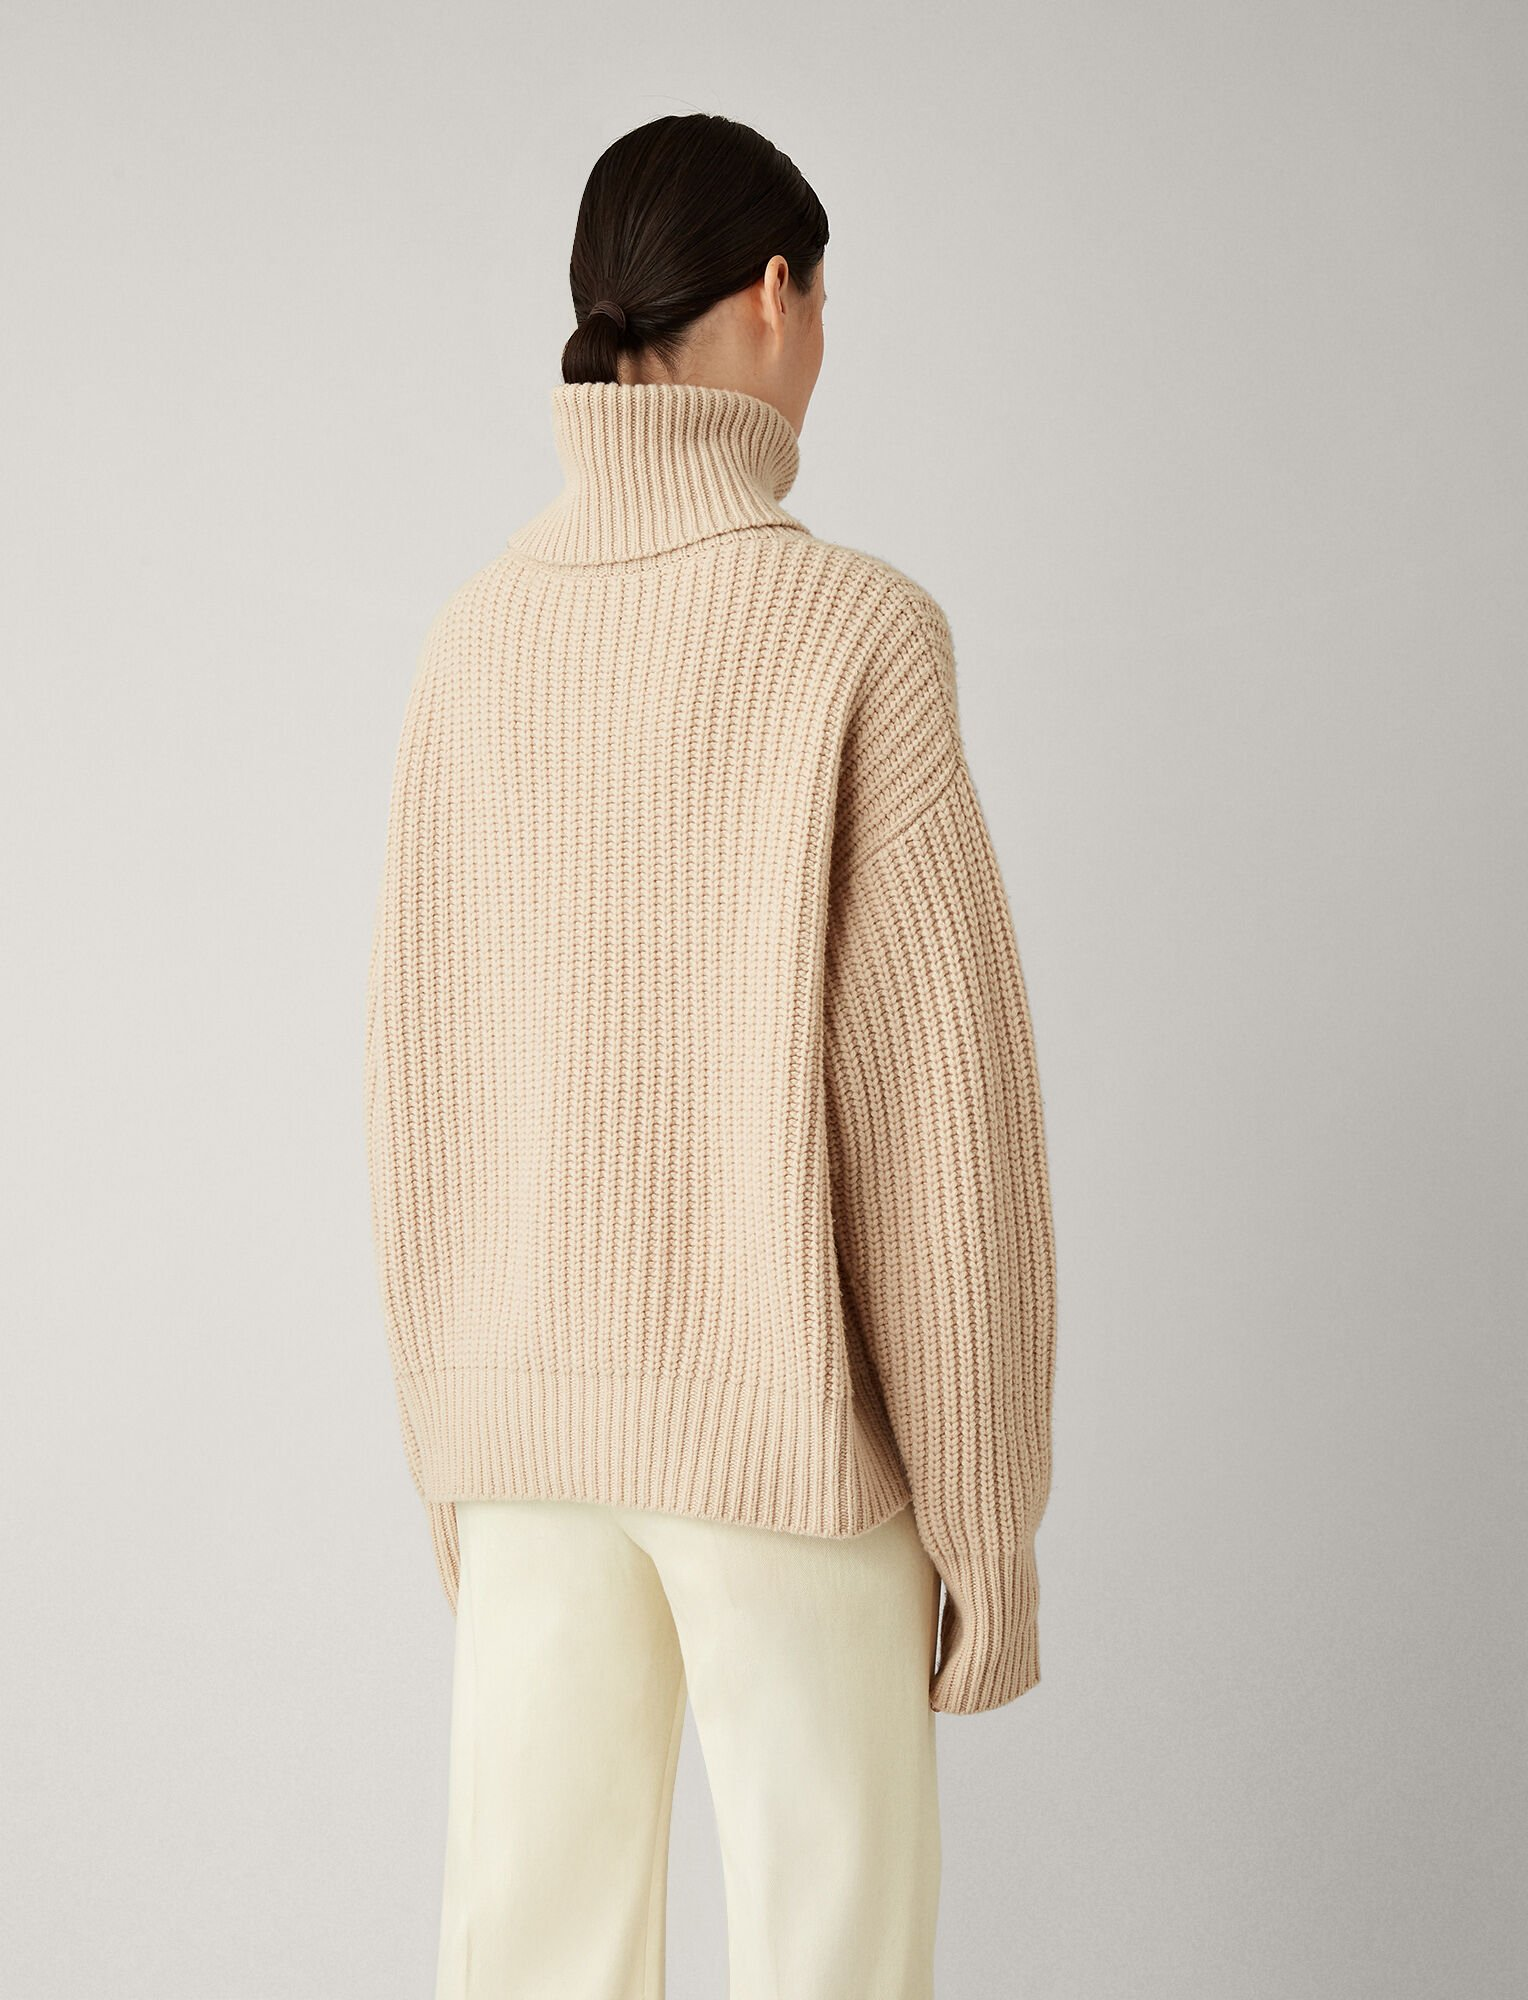 Joseph, Pearl Sweater Soft Wool Knit, in LATTE